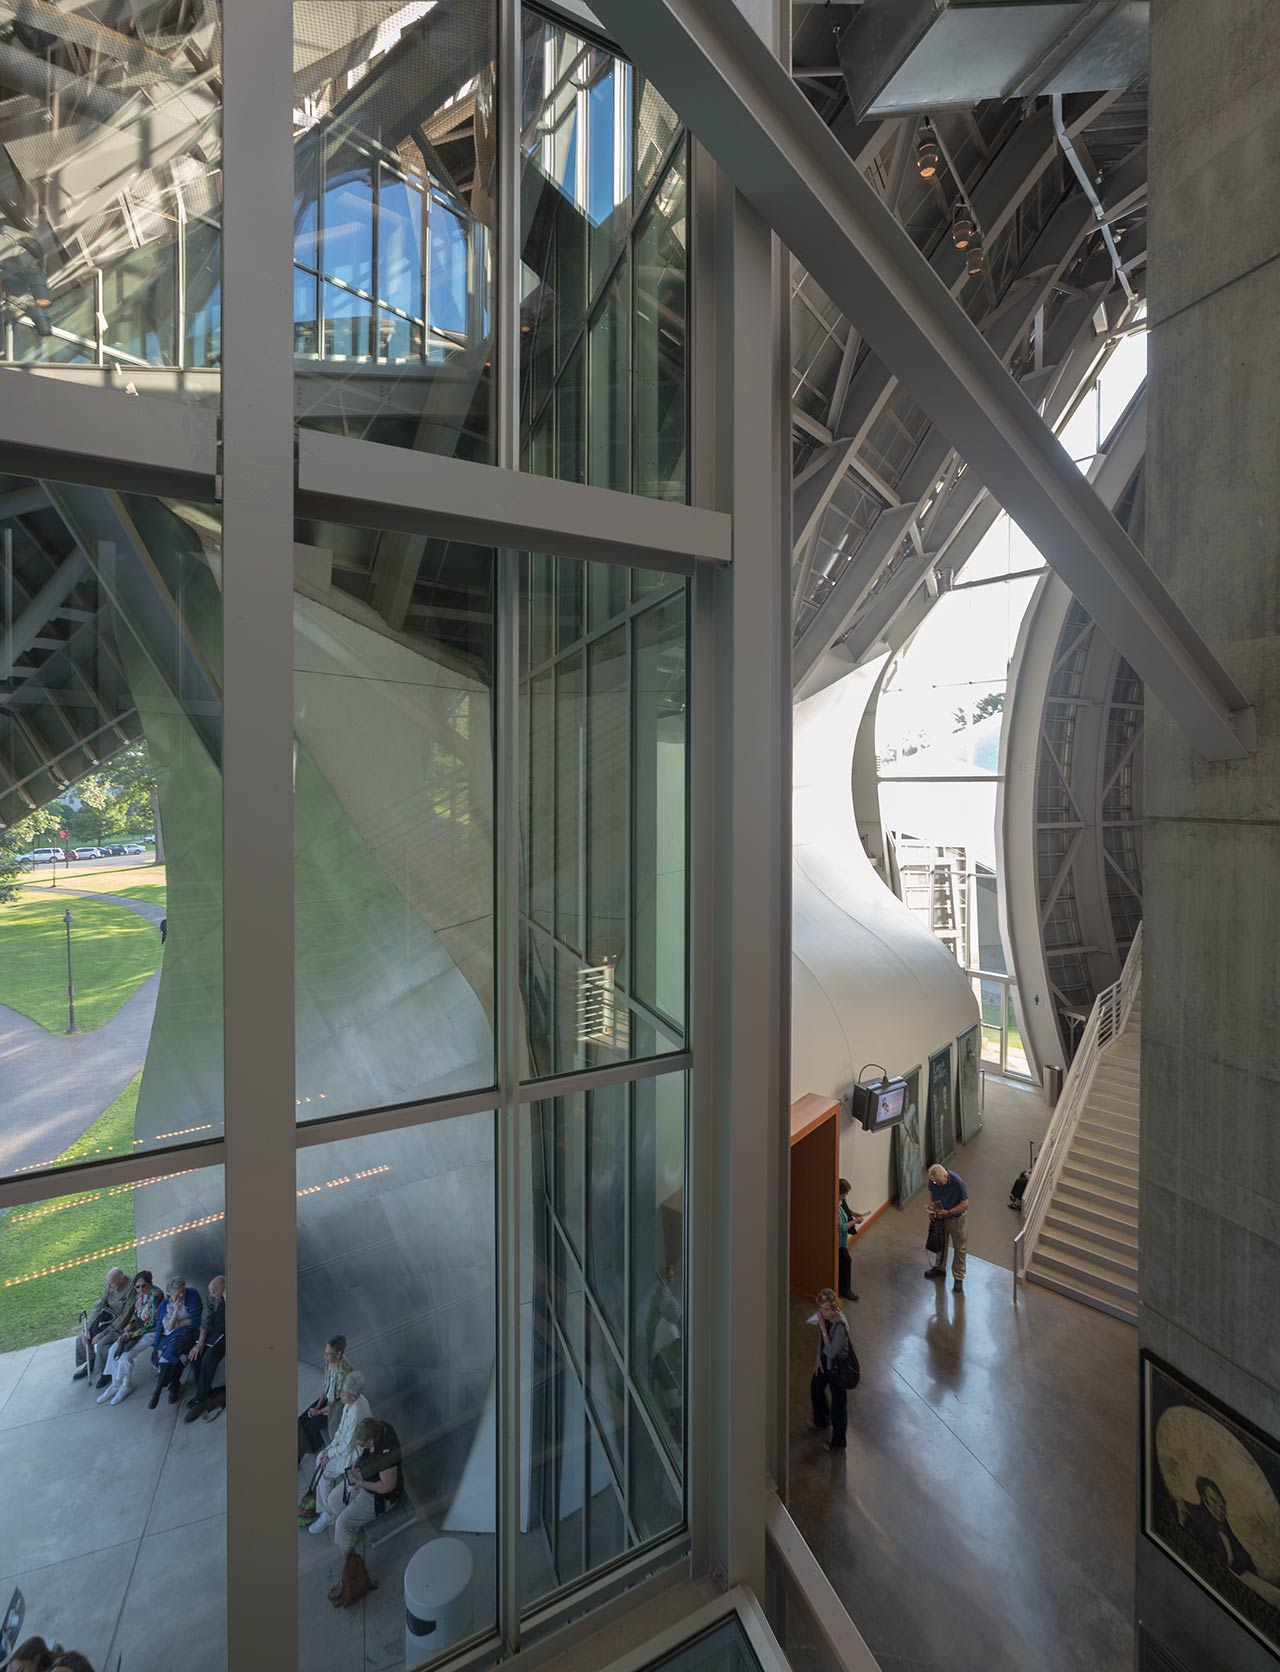 Interior and exterior of Fisher Center, viewed through the massive glazing system on the front entrance.